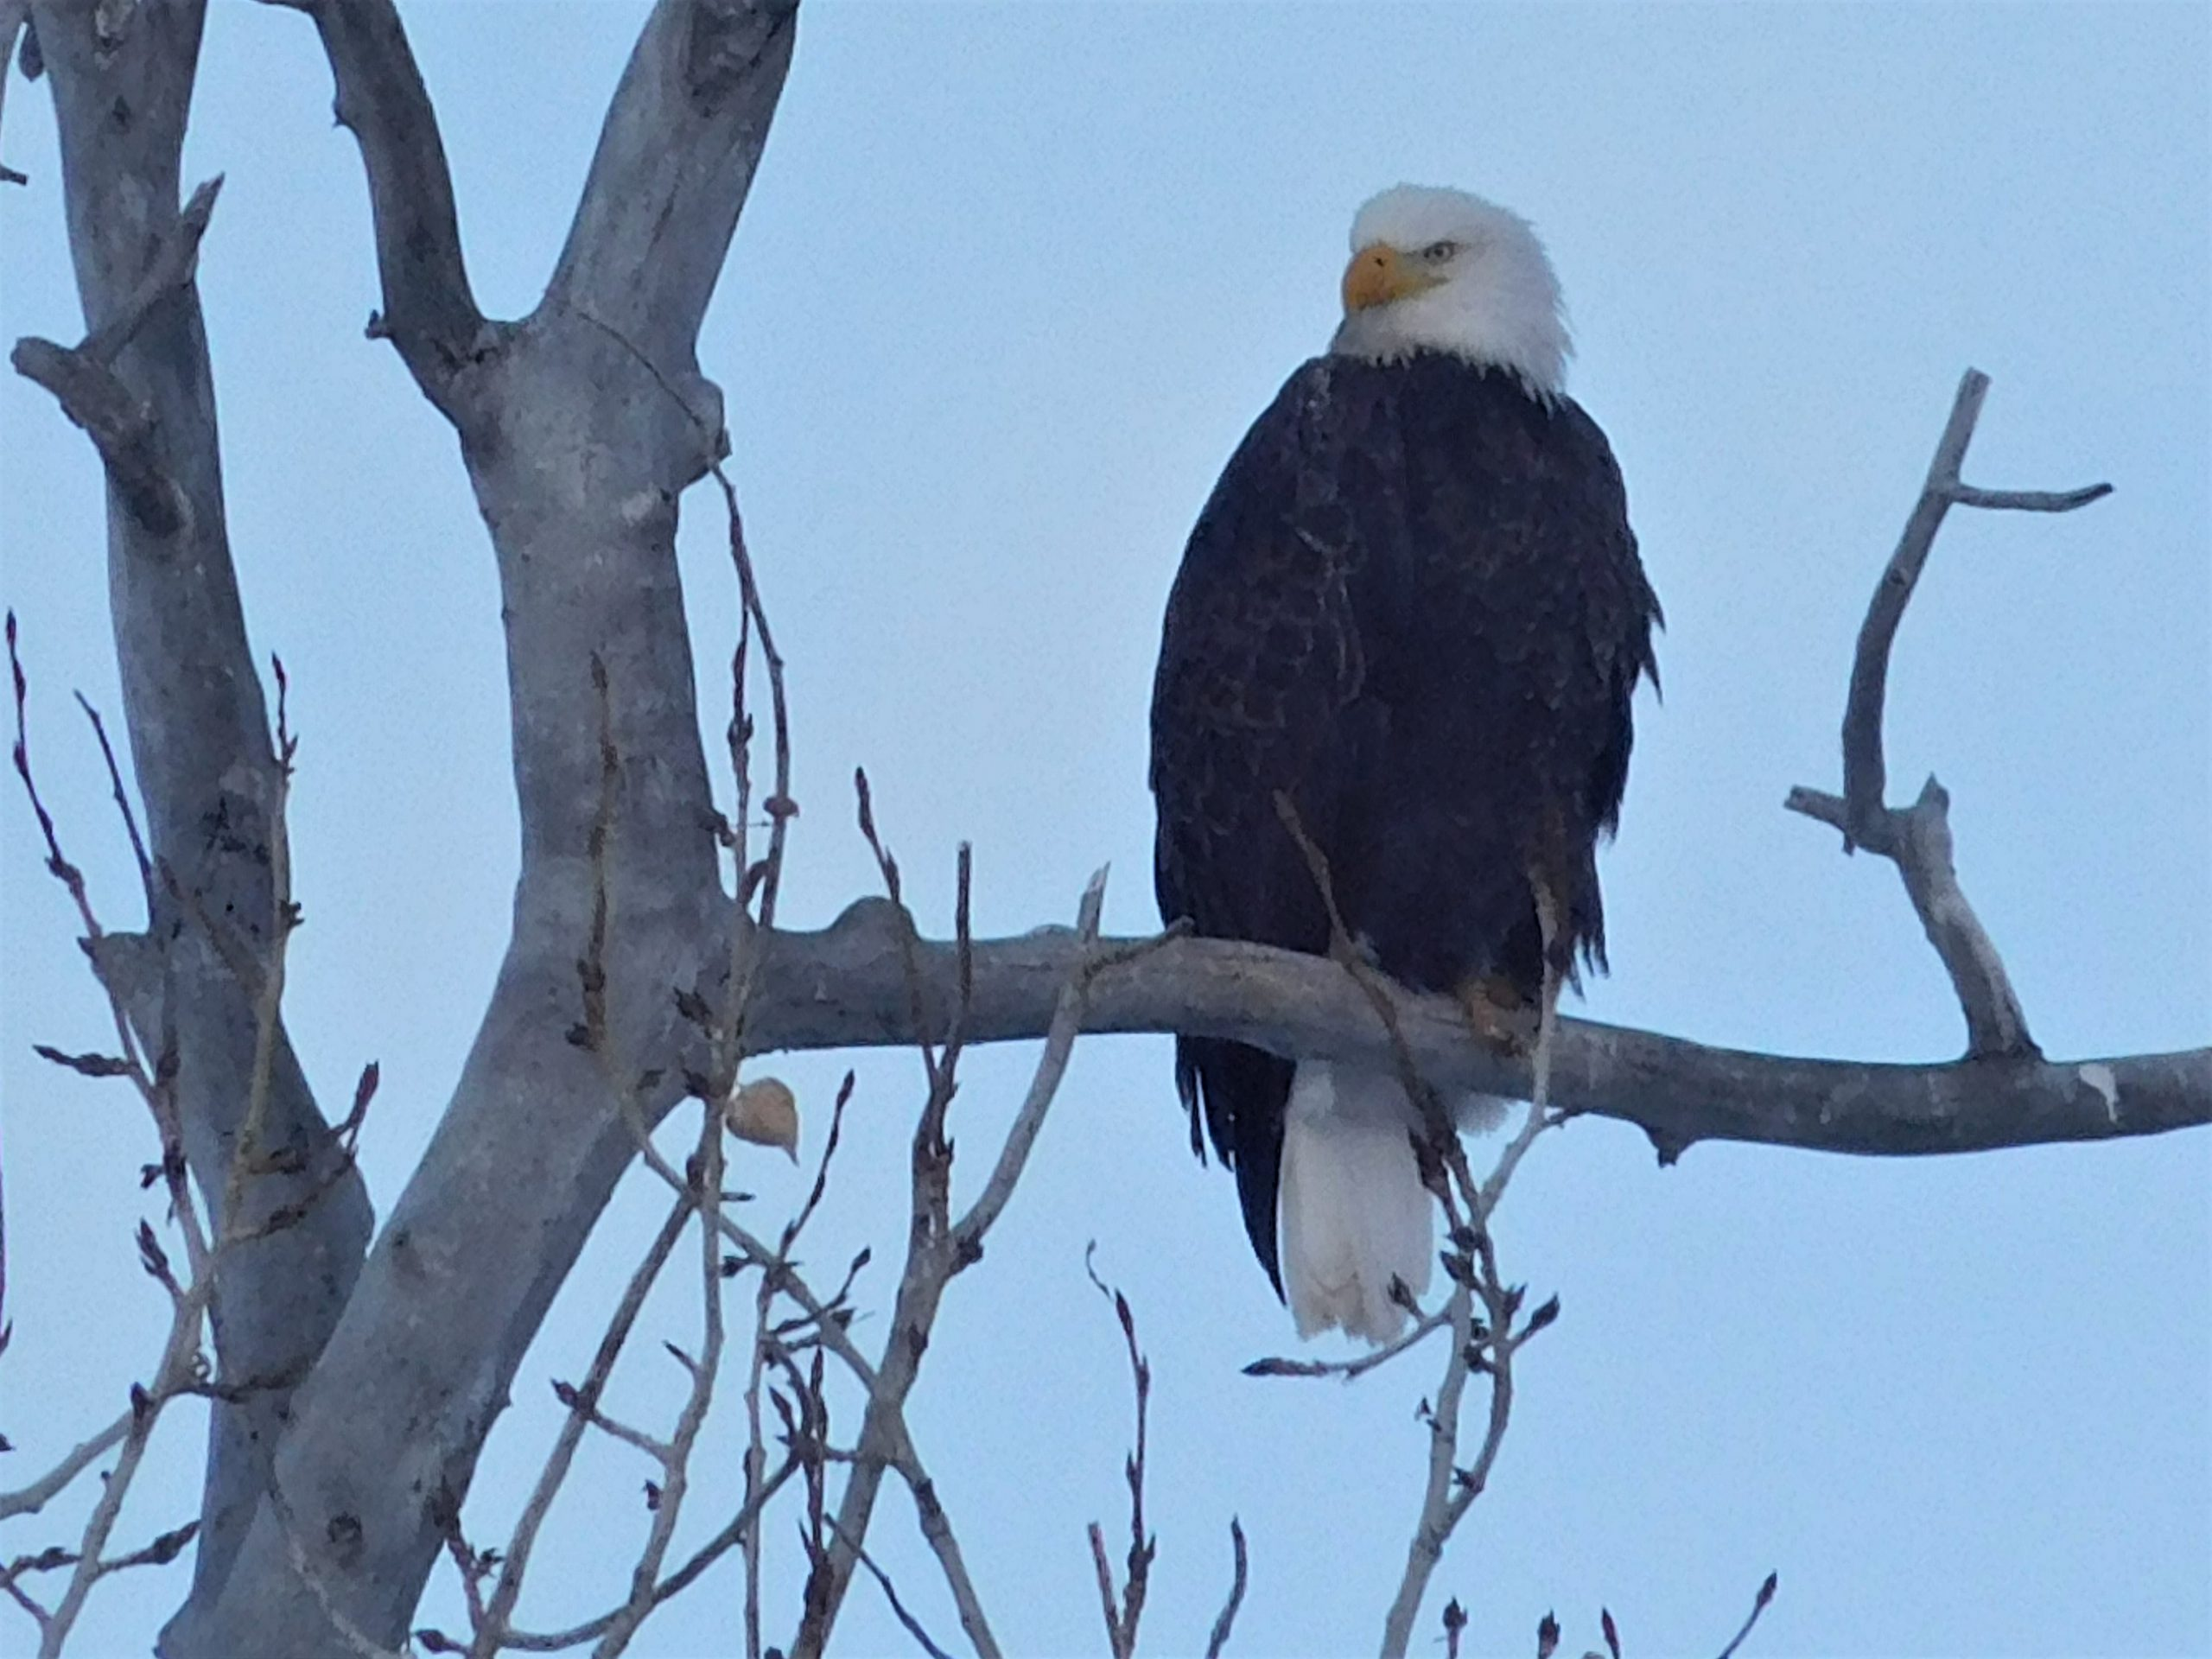 Volunteers Needed to Assist in Mid-Winter Eagle Survey